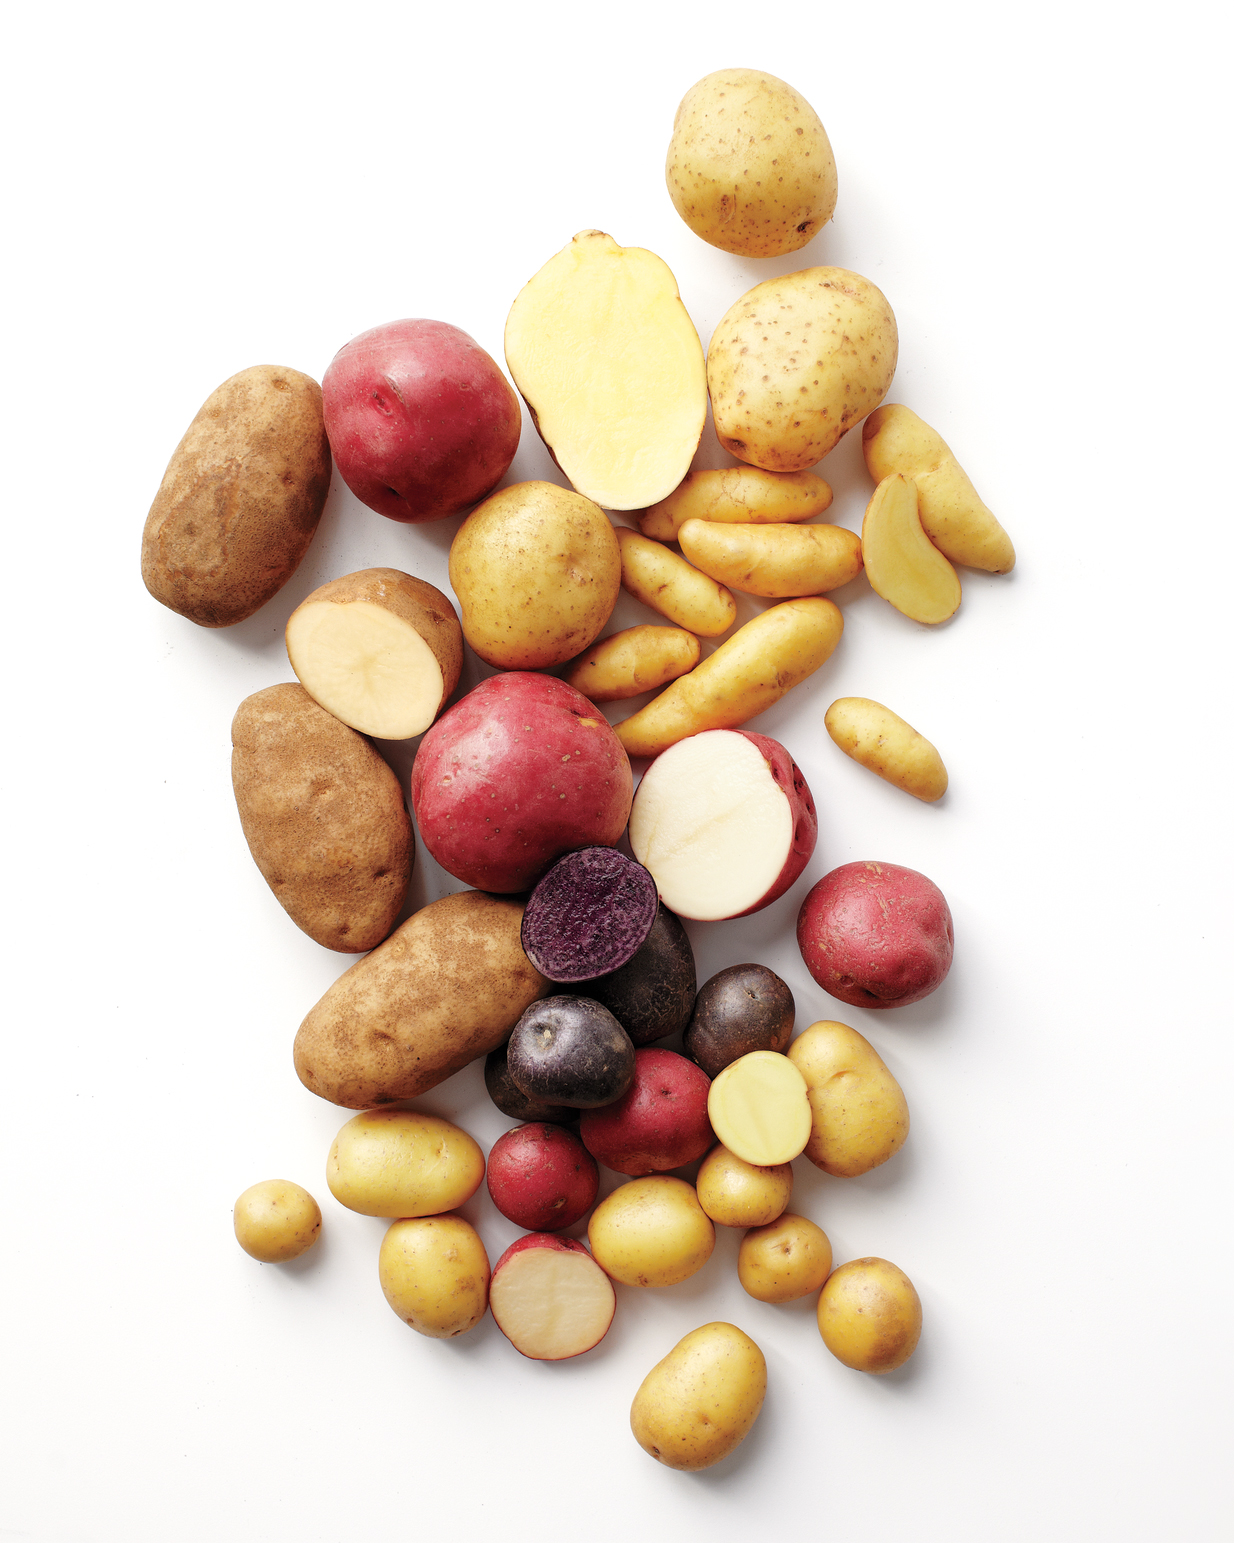 Starchy, Waxy, and All-Purpose: Potato Types, Explained